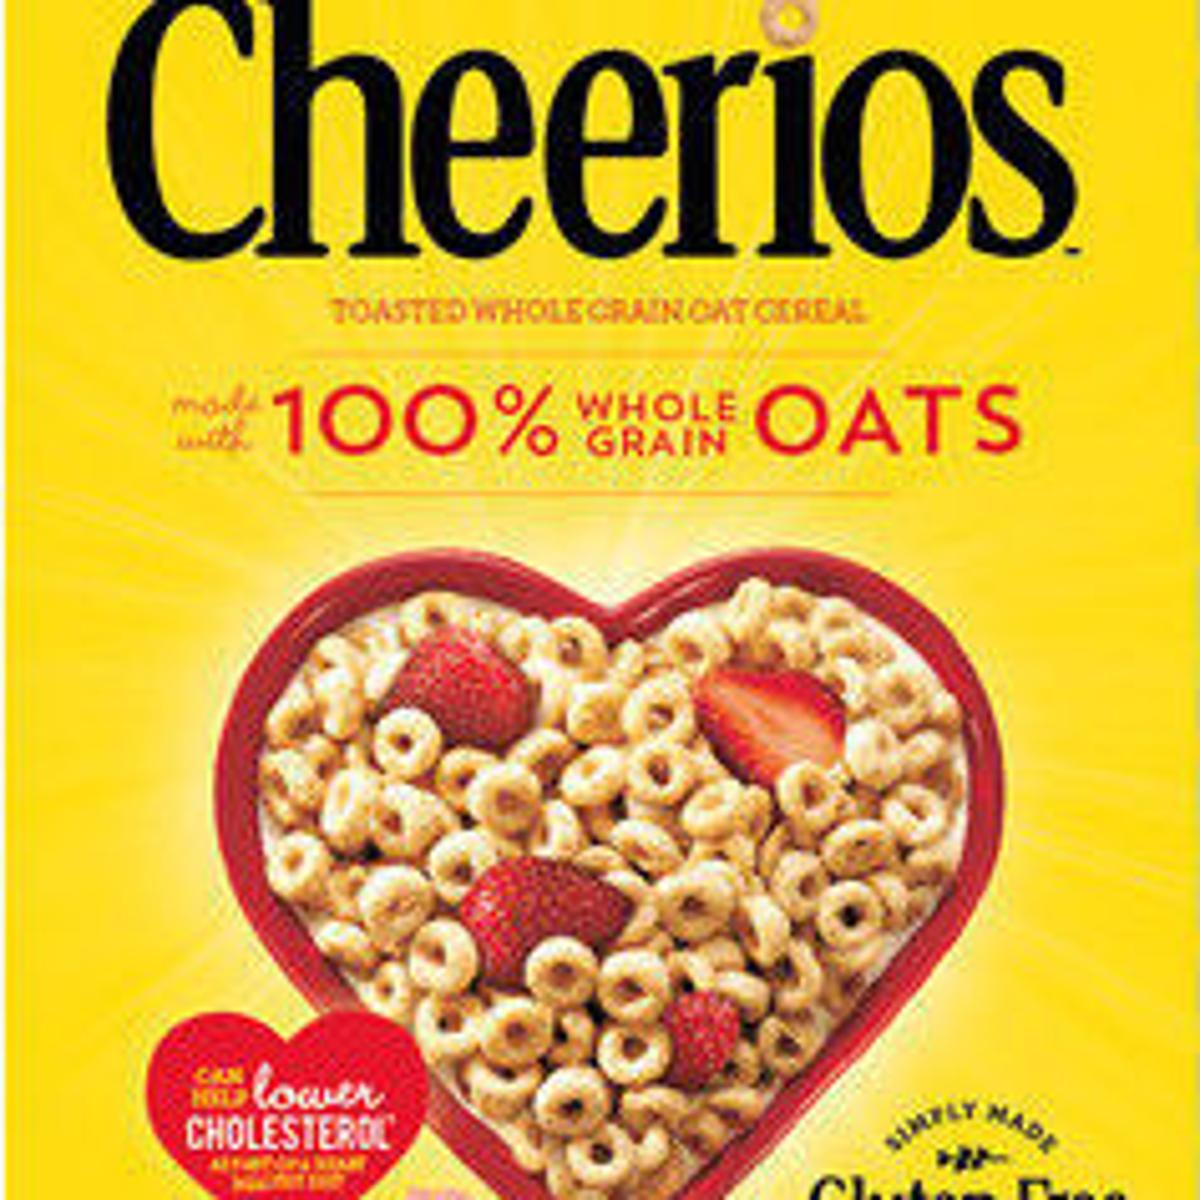 General Mills recalling 1 8M Cheerios boxes on allergy risk